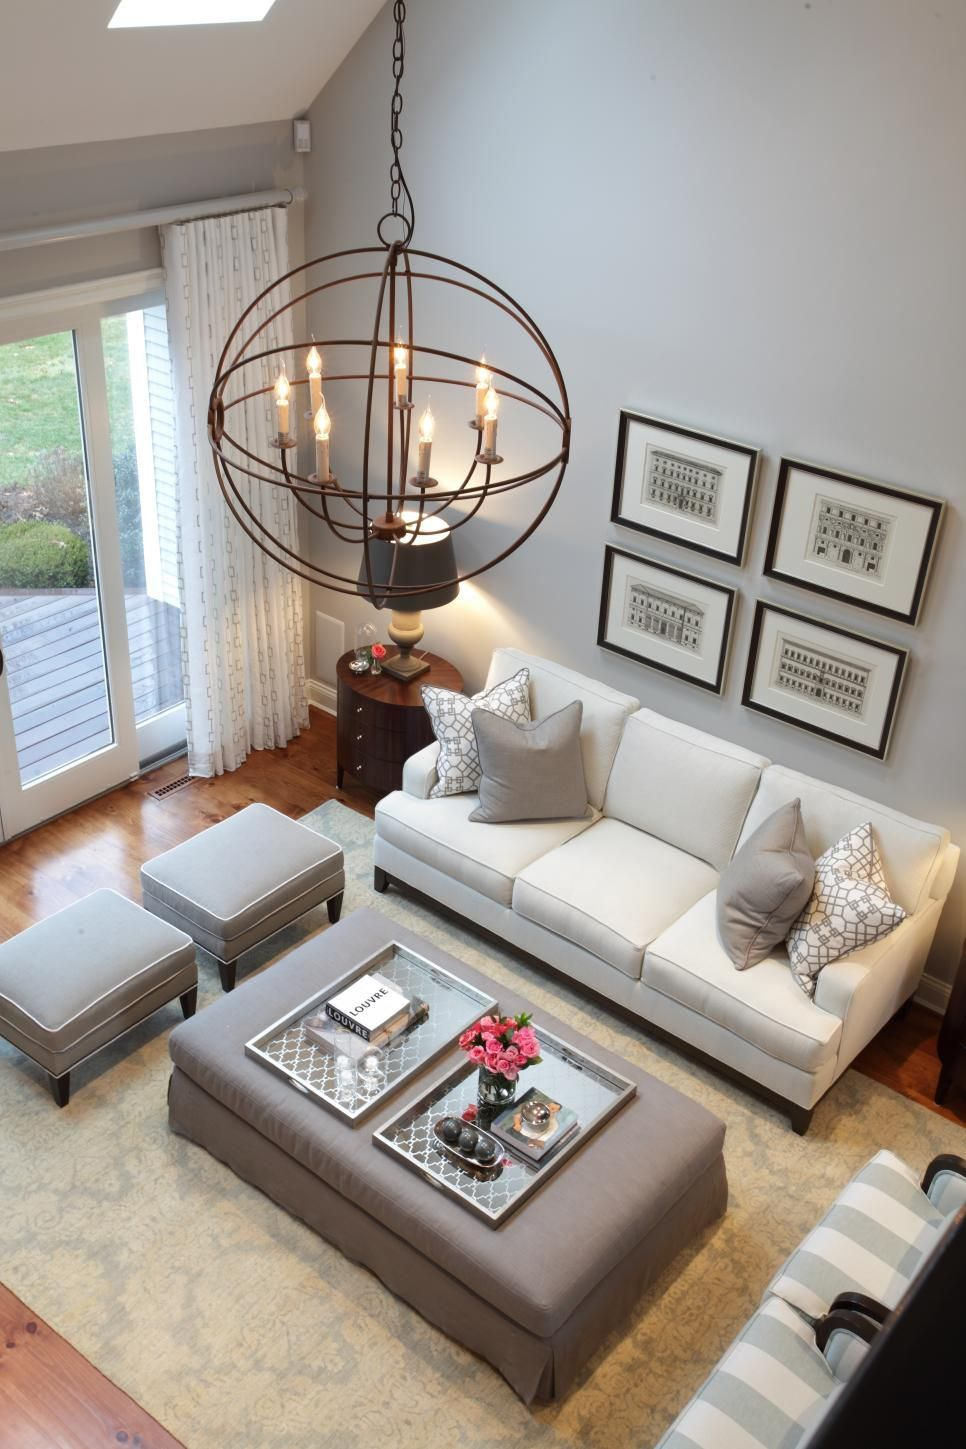 lighting ideas for living room high ceiling curtains in images ceilings and stylish design this uses a beautiful palette of soft gray white an orb chandelier black framed art